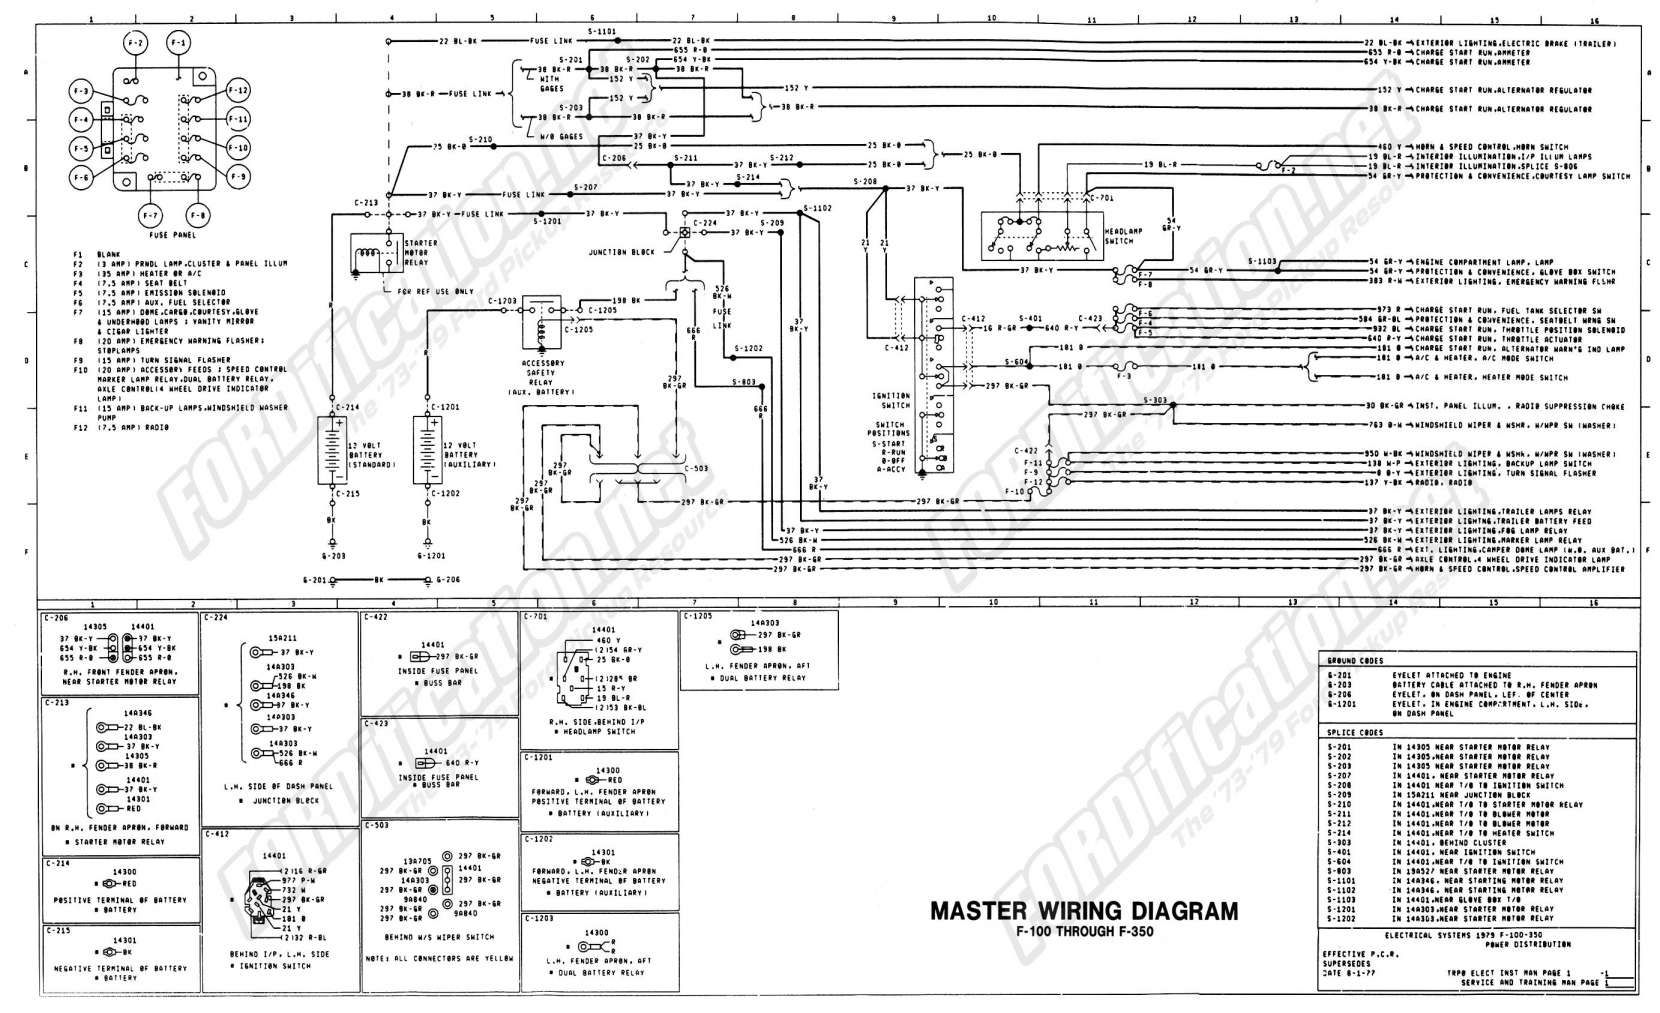 18+ 99 Sterling Truck Wiring Diagram | Sterling trucks, Diagram, Wire | 99 Sterling Wiring Diagram |  | Pinterest